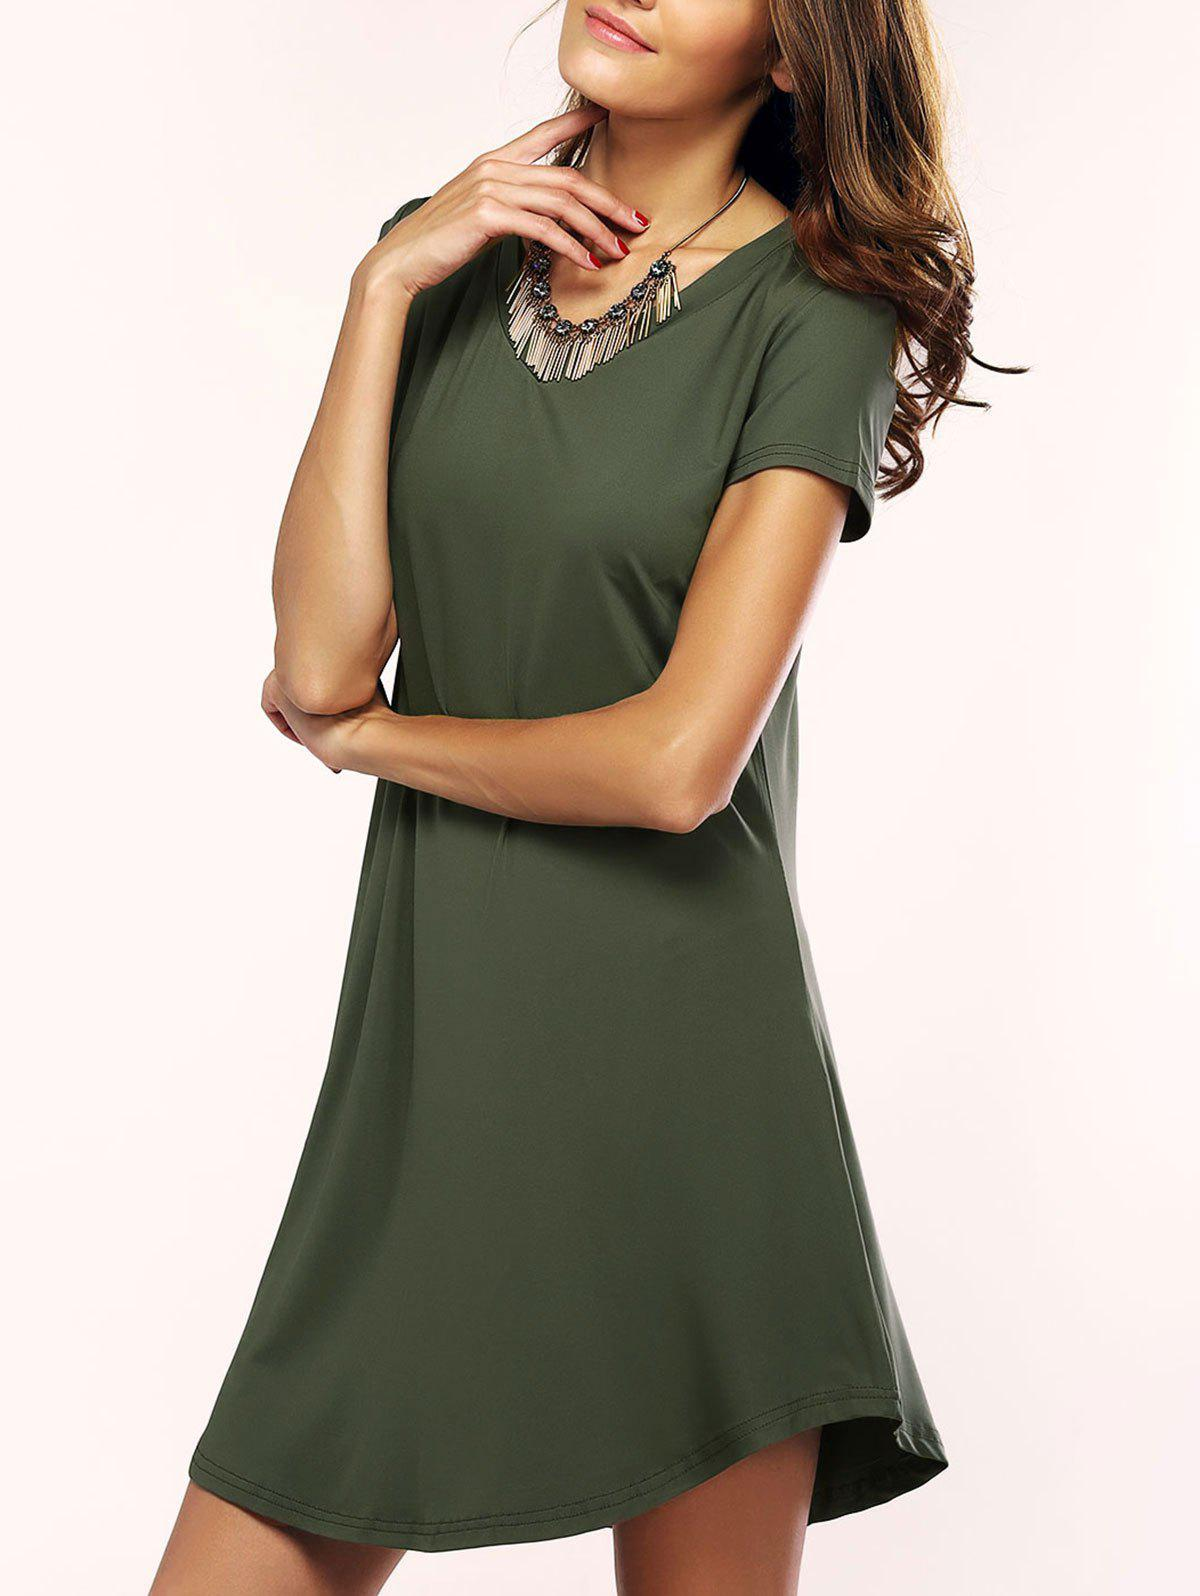 Brief Womens Solid Color Asymmetric T-Shirt DressWomen<br><br><br>Size: S<br>Color: ARMY GREEN